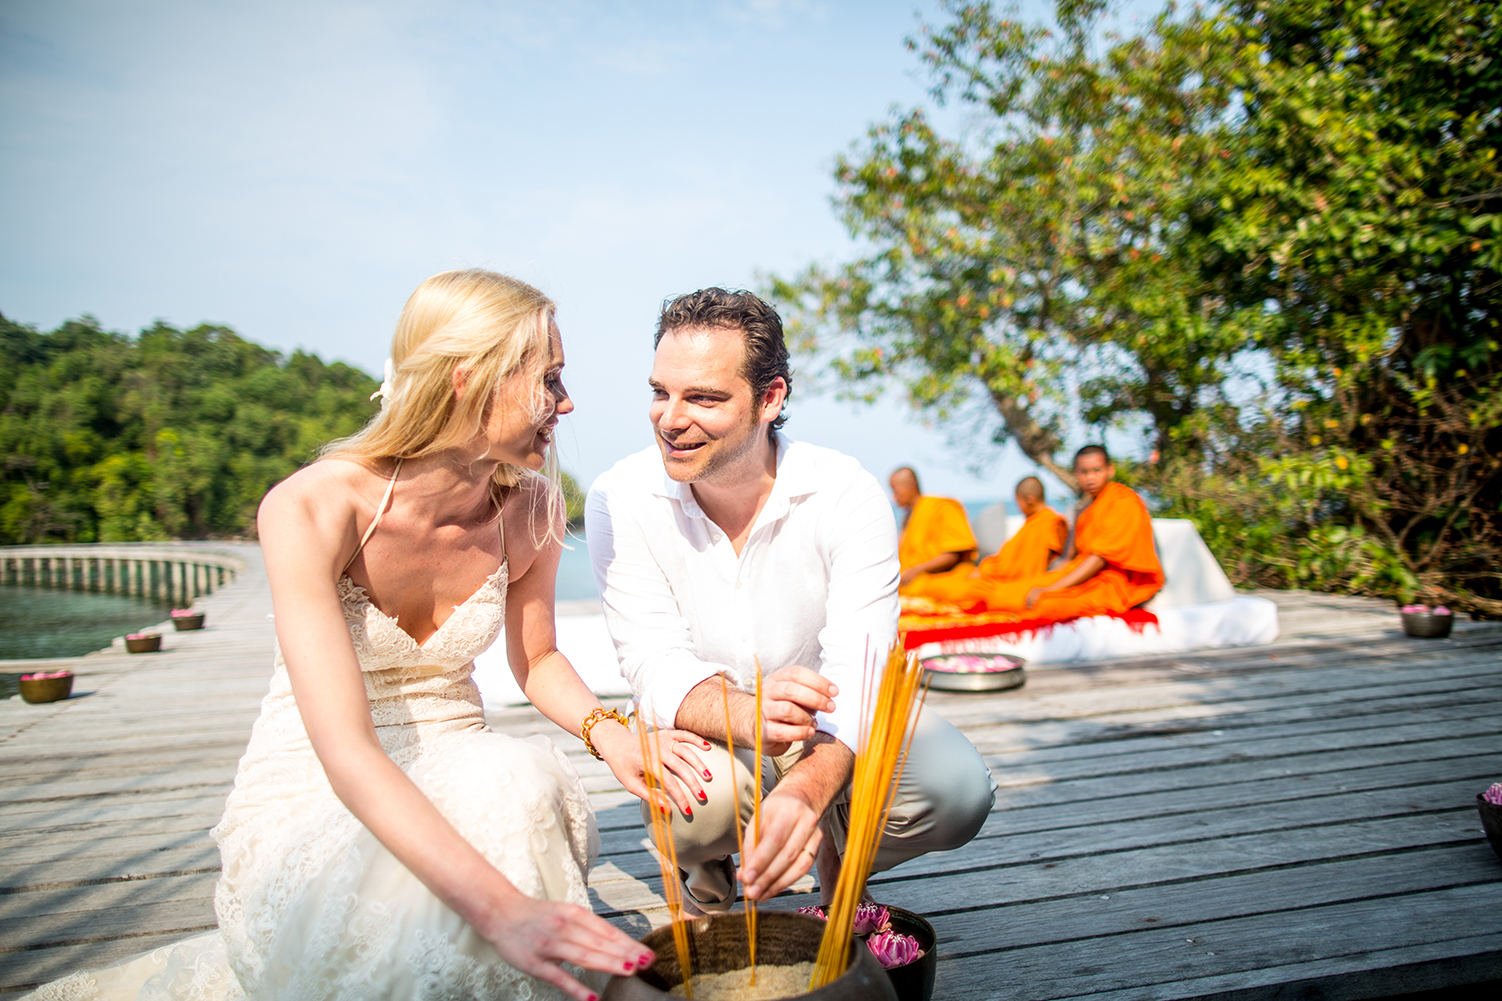 Christian and Sarah\'s Wedding at Song Saa Private Island Resort. Justin Mott/Mott Visuals Weddingswww.mottvisualsweddings.com